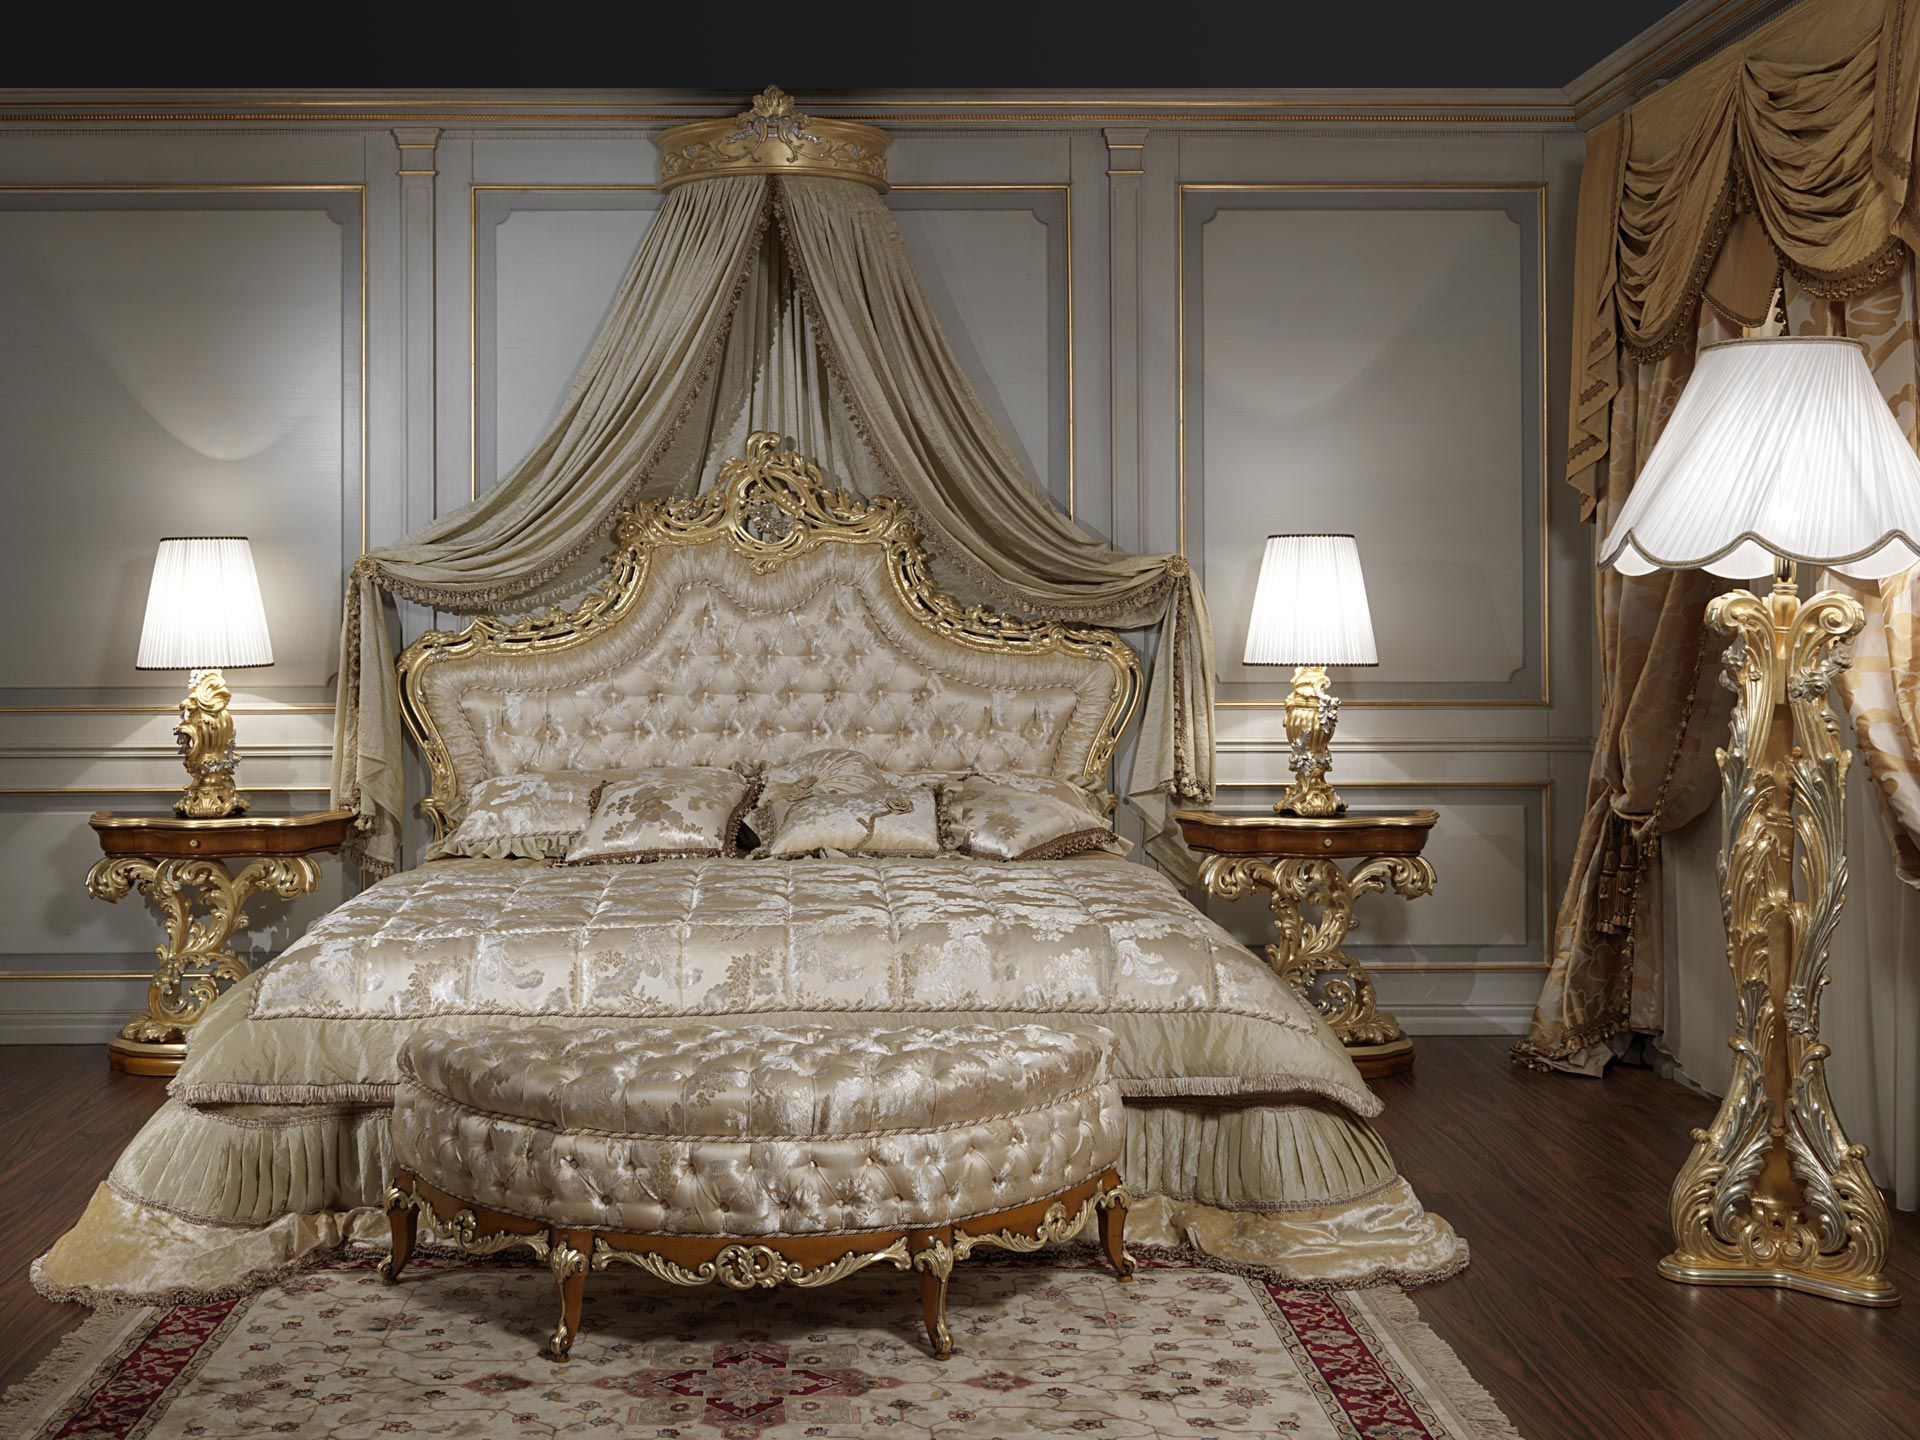 Roman Baroque Bed Art 2012 Vimercati Classic Furniture Baroque Bedroom Classic Bedroom Classic Bedroom Design